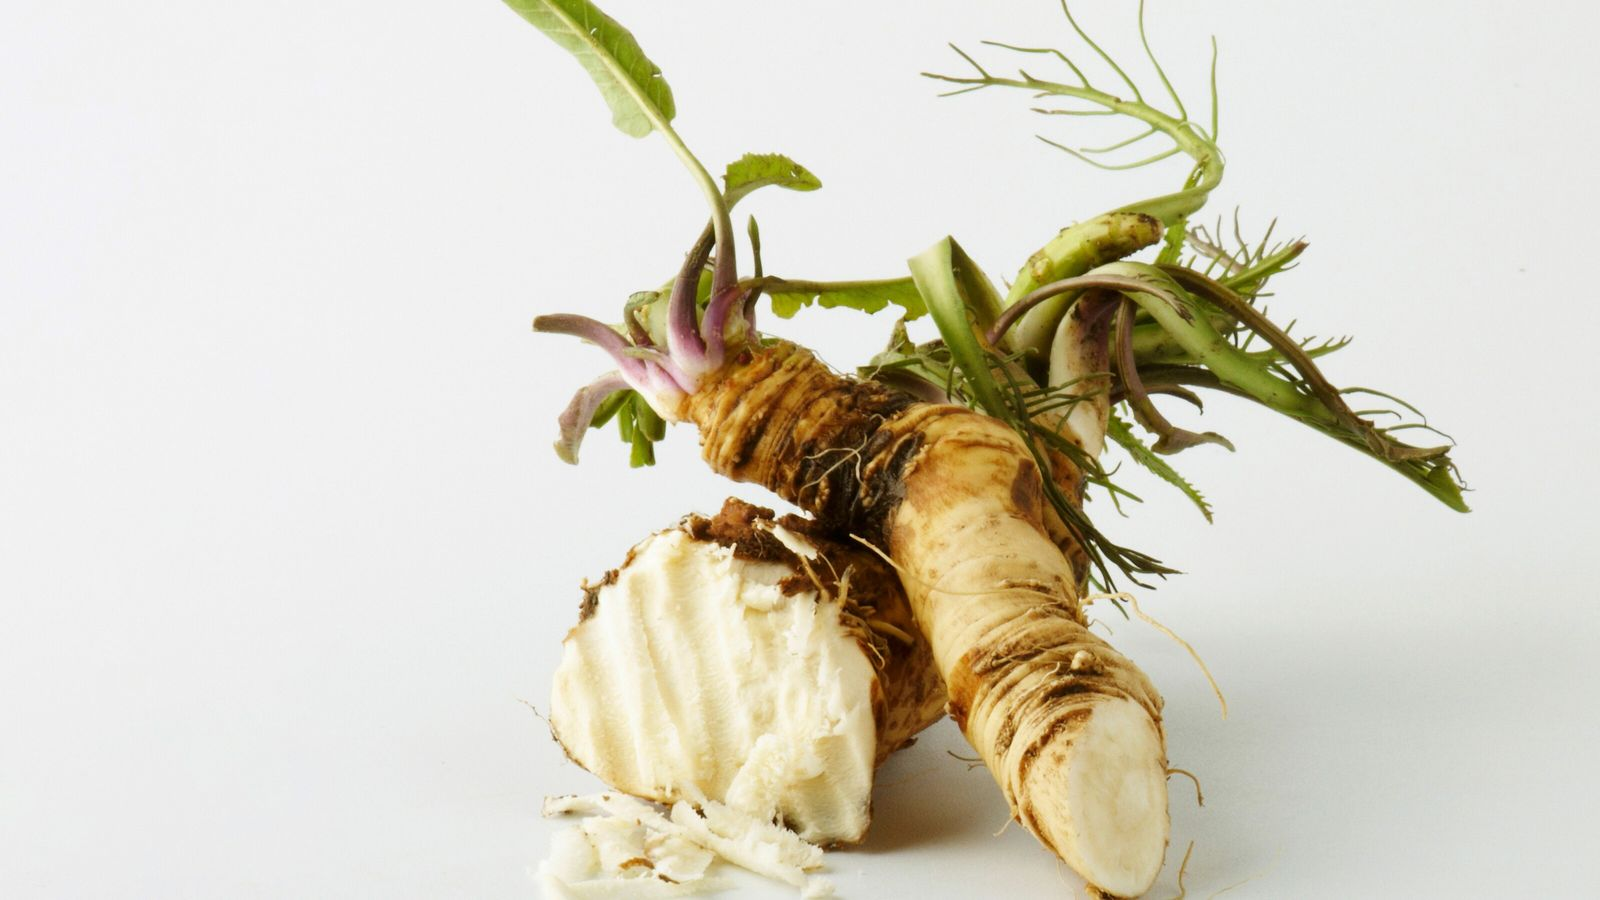 As well as flavour, horseradish is said by some to have health benefits, thanks to the ...